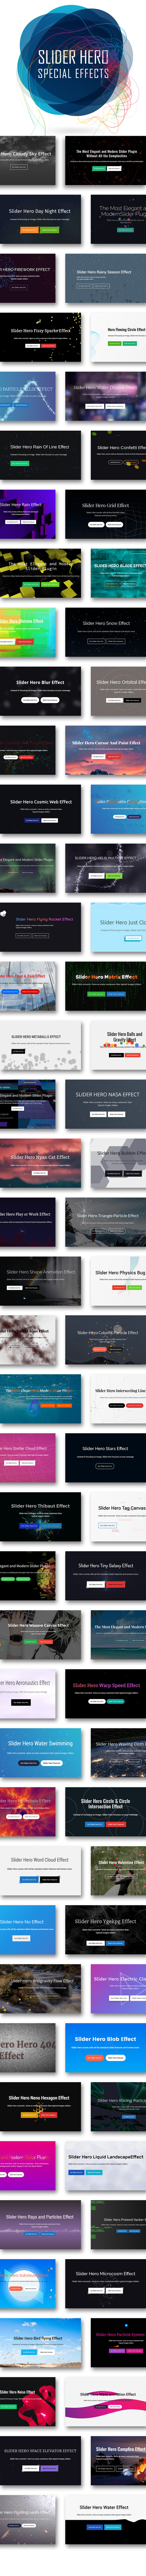 Slider Hero with Animation Effects, Video Background and Intro Maker | Prosyscom Tech 10